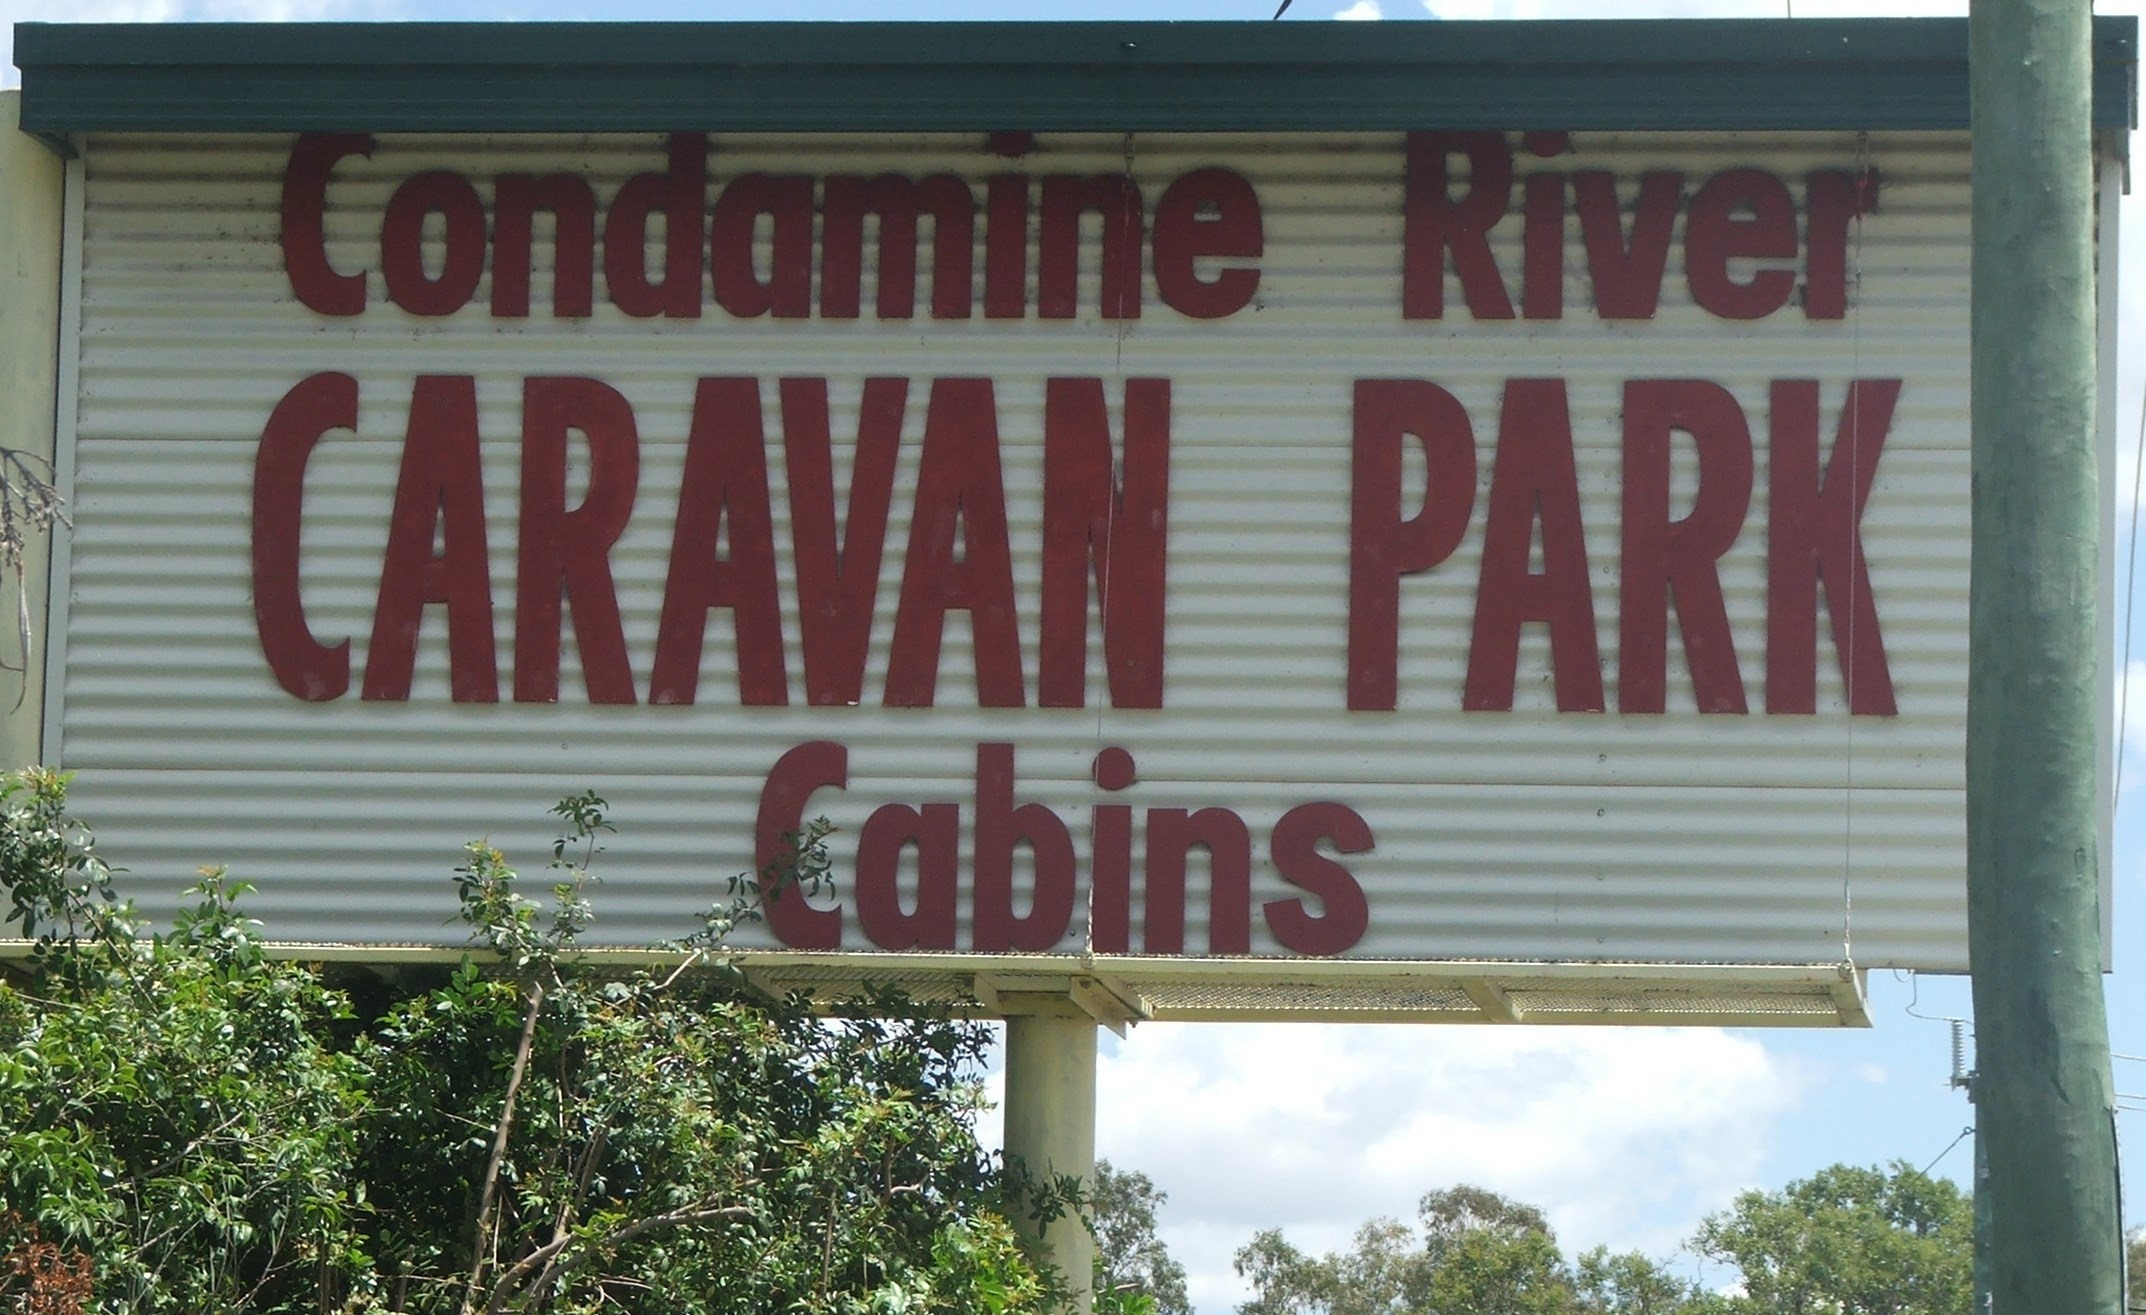 Caravan Park + Cabins + Business + Extra 3 Bedroom Residence